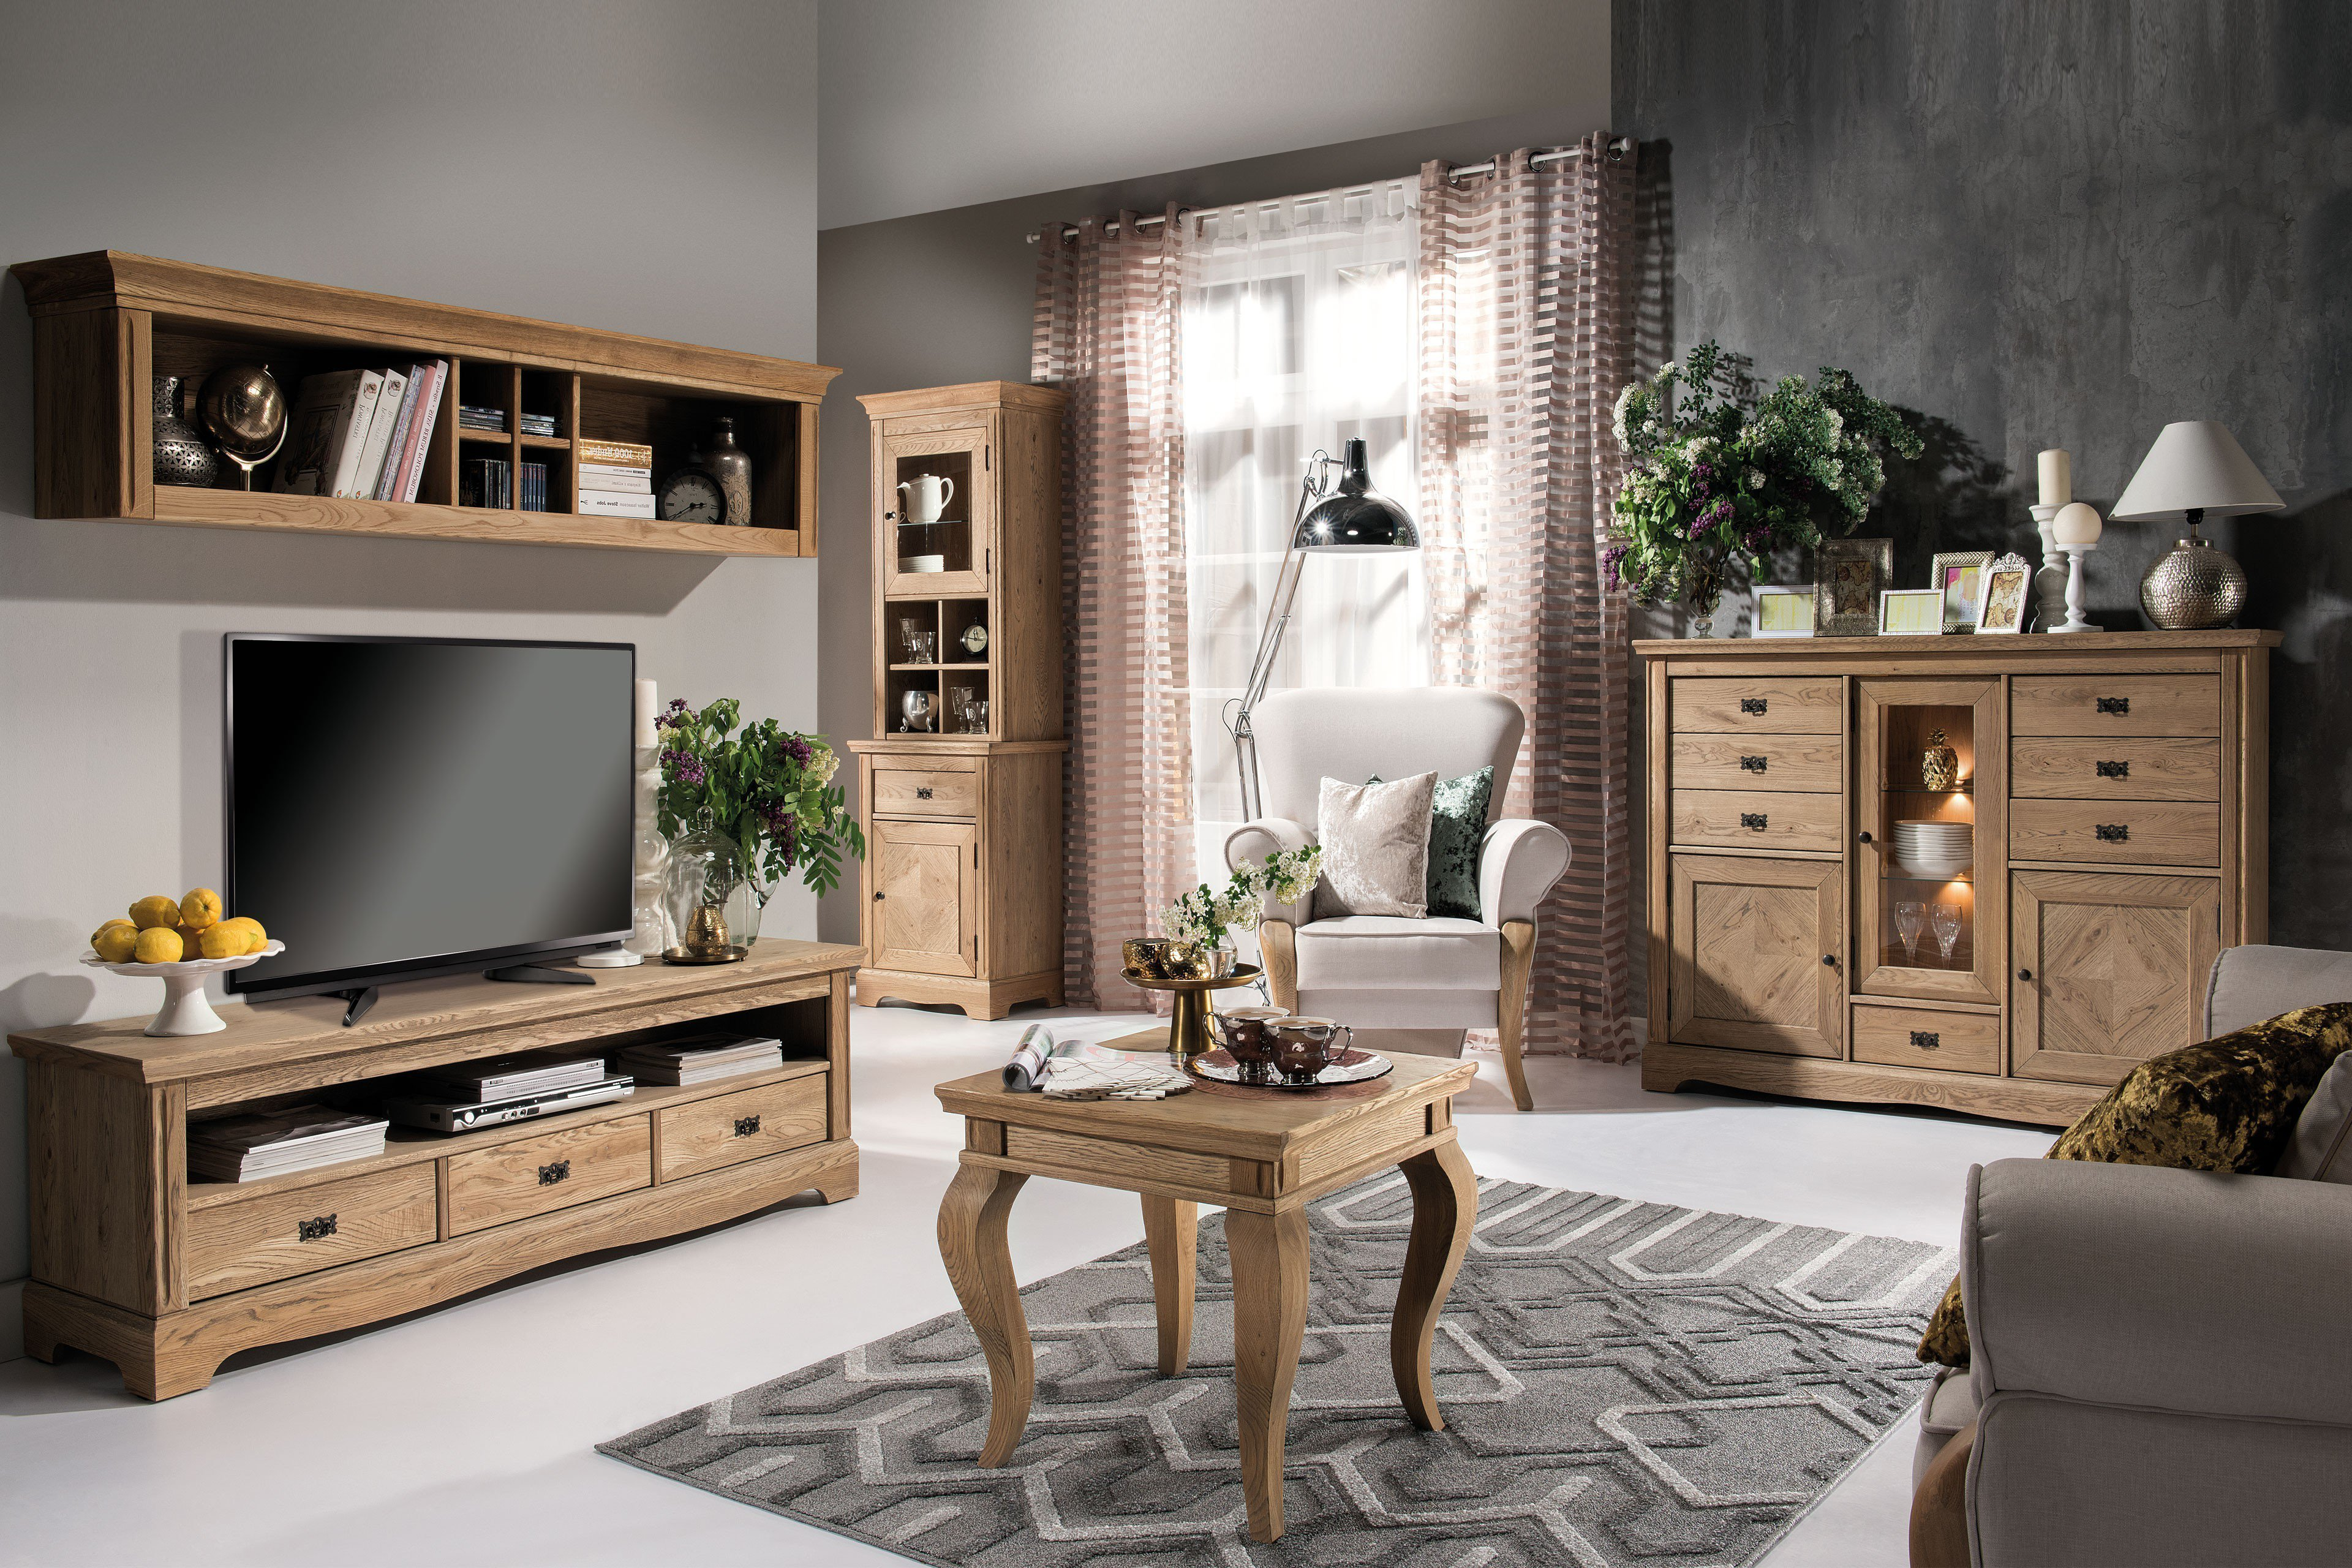 kollektion letz atelie wohnwand alte eiche m bel letz. Black Bedroom Furniture Sets. Home Design Ideas